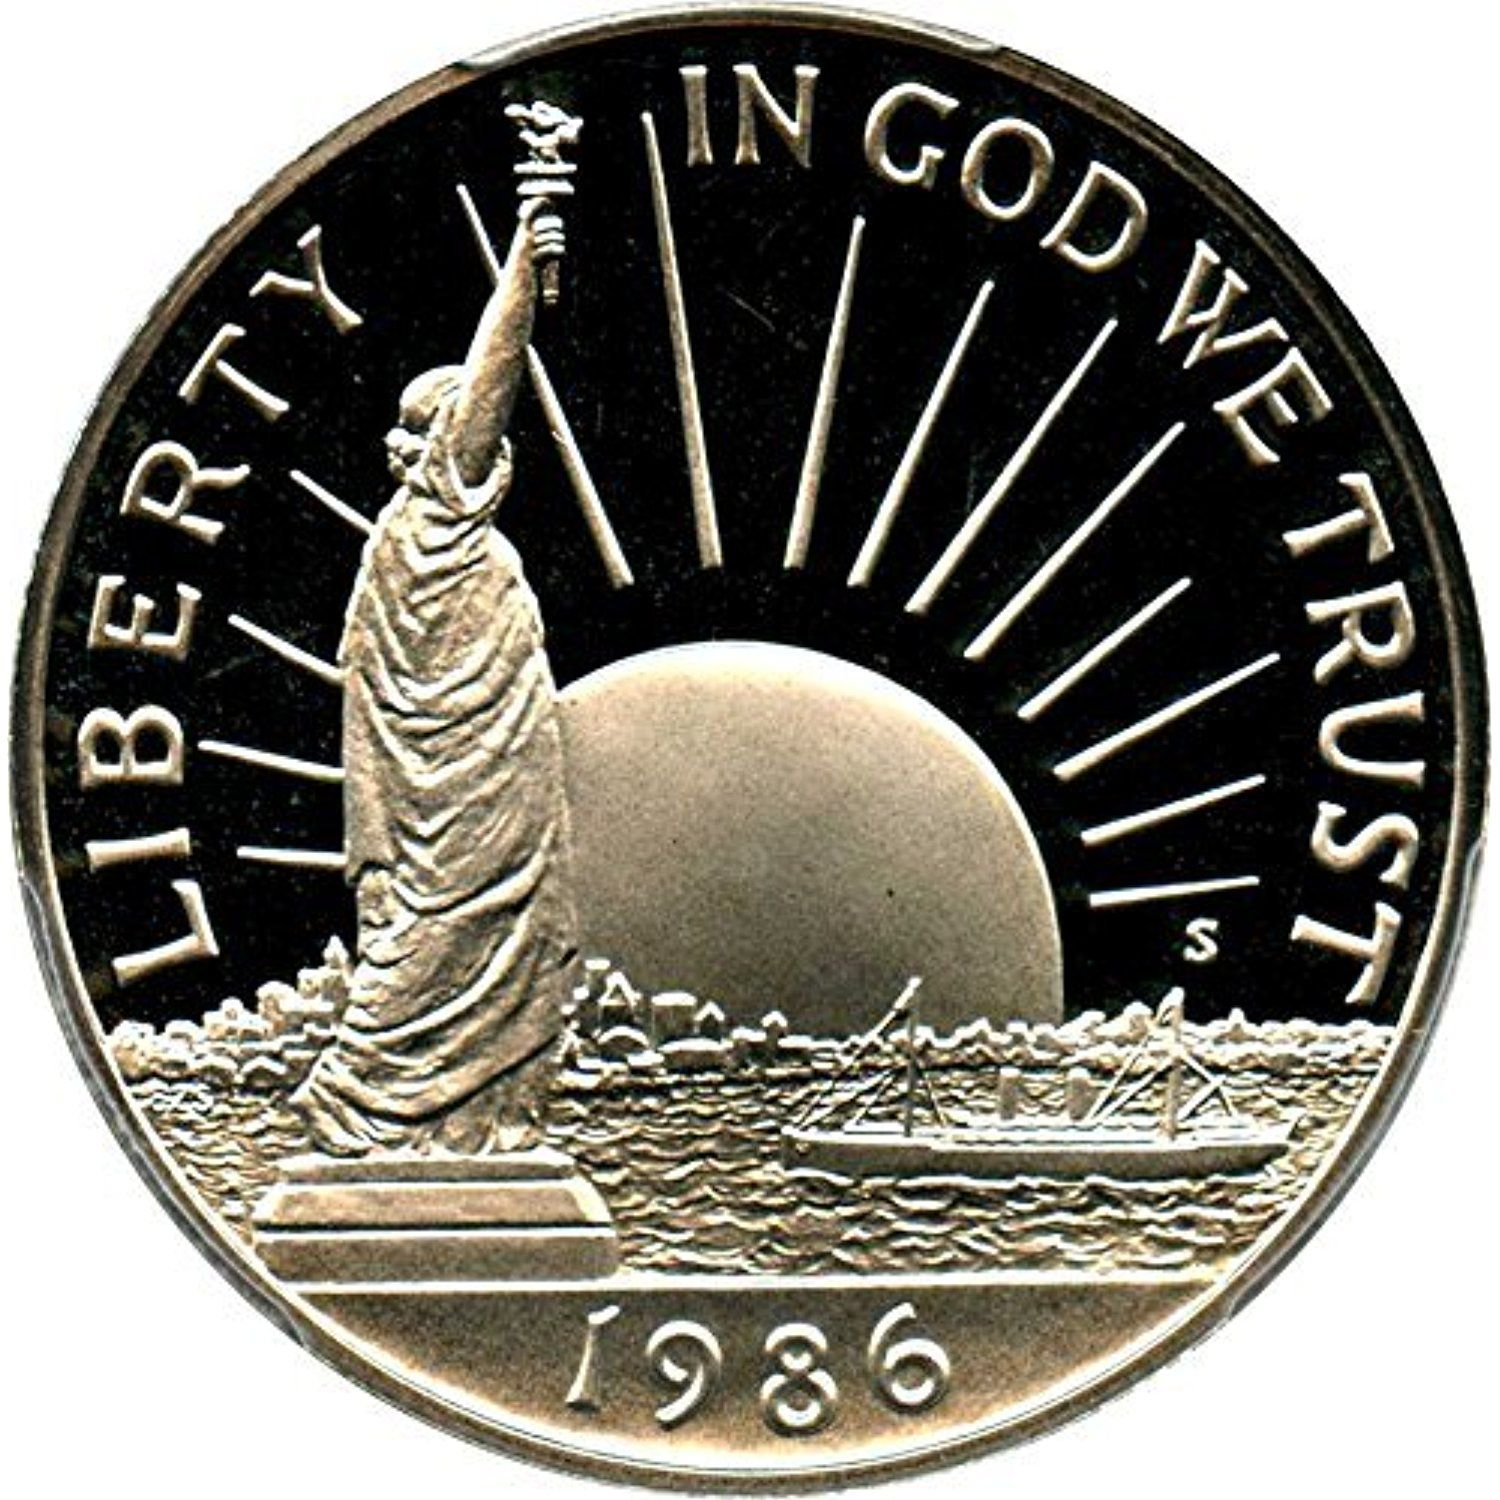 1986 S Us Commemorative Proof Half Dollar Statue Of Liberty 50c Us Mint 1 2 Proof Dcam Us Mint Read More At The Image L Half Dollar Coins Coin Collecting